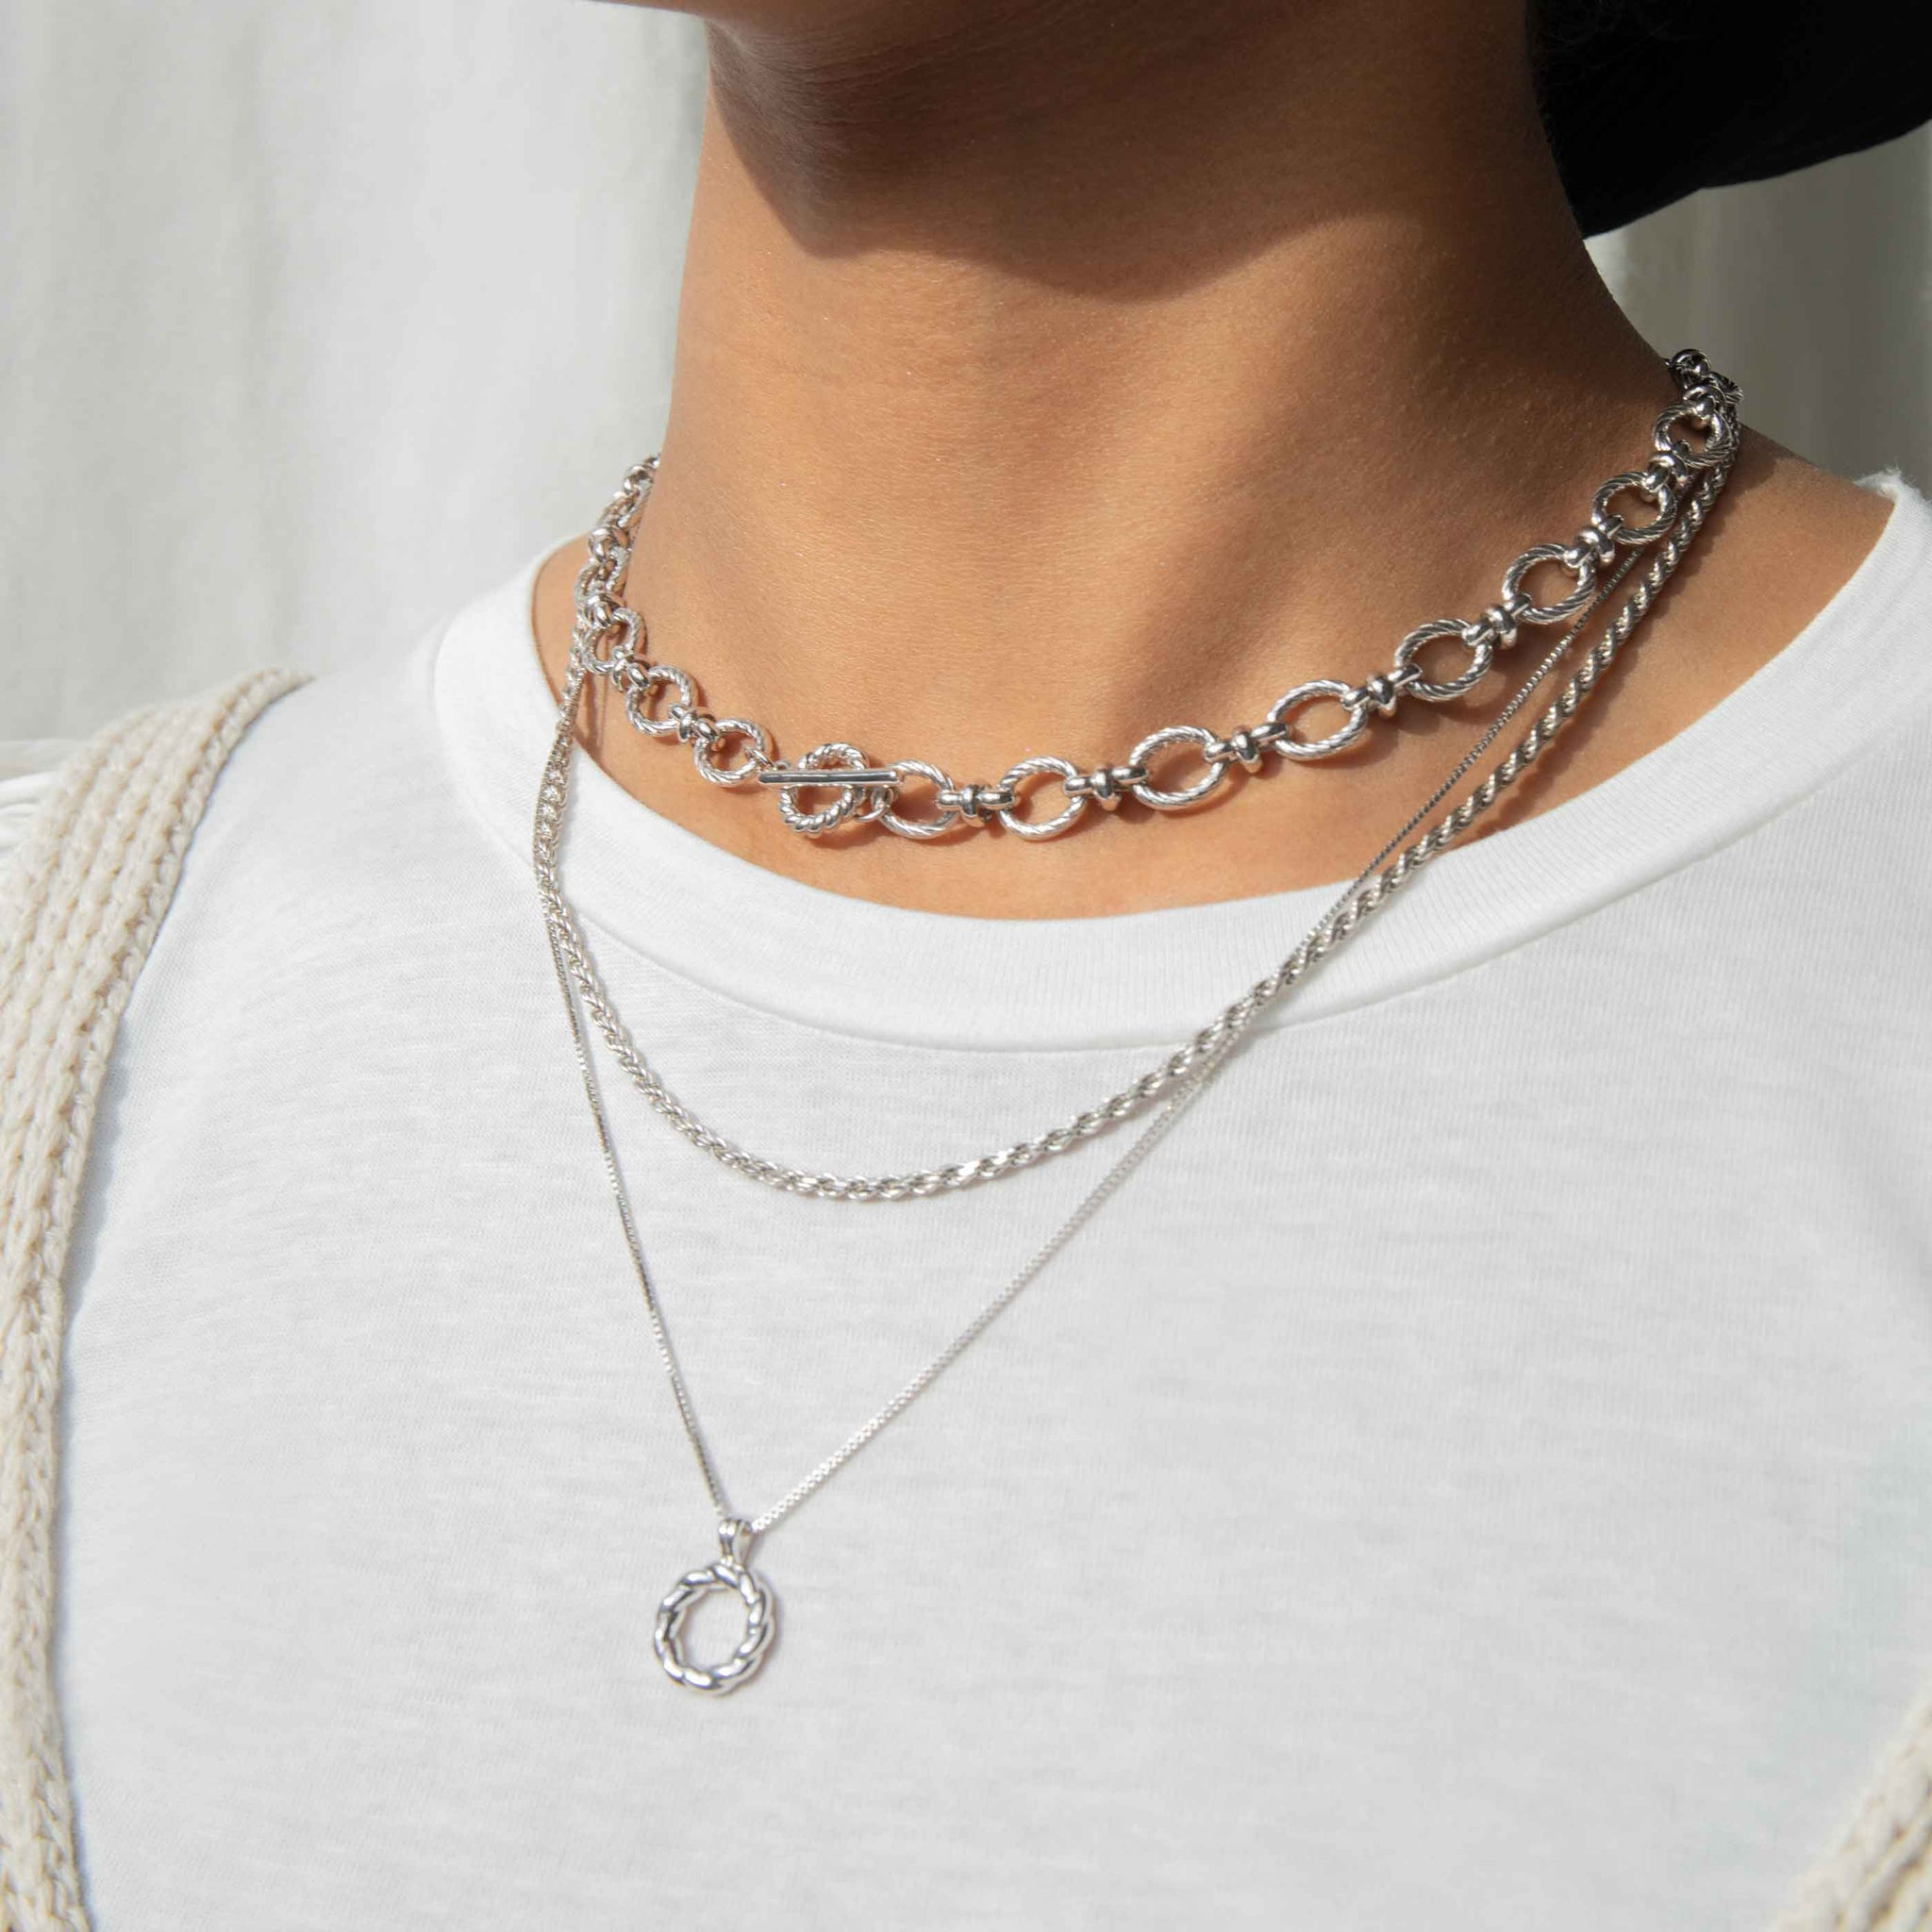 Rope Chain Necklace in Silver